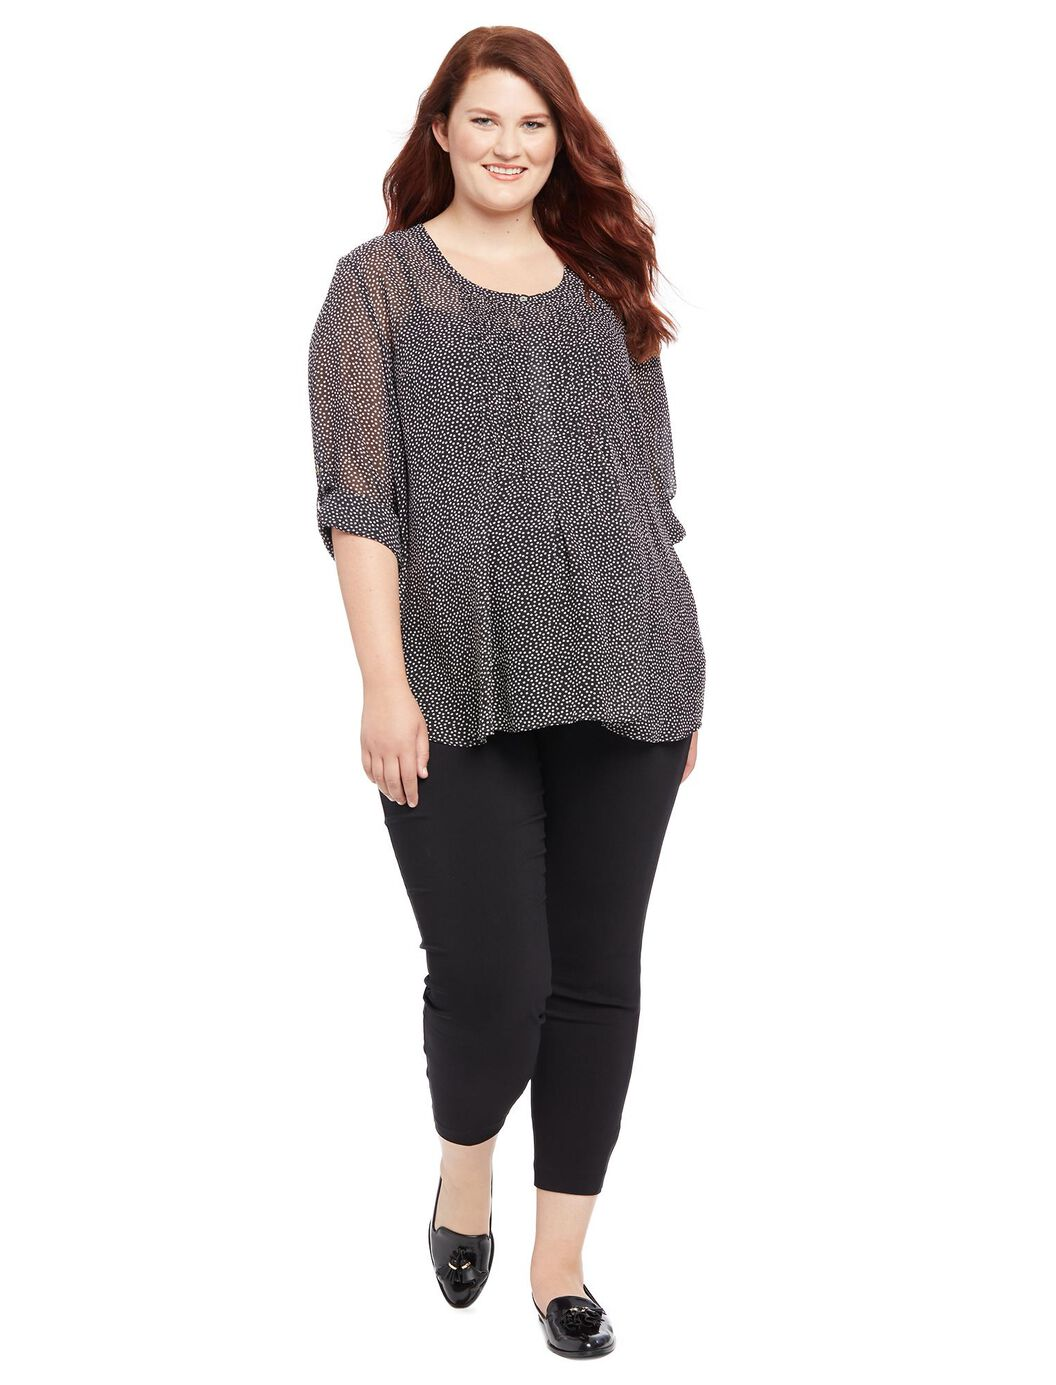 Tops Plus Size Maternity. Narrow by Top Style. T-Shirt. Blouse. Graphic Tee. Nursing. Cold Shoulder. Button Up Shirts. Lace Up. See More. Filter; Sale $ Free ship at $49 Motherhood Maternity Plus Size Wrap Top.